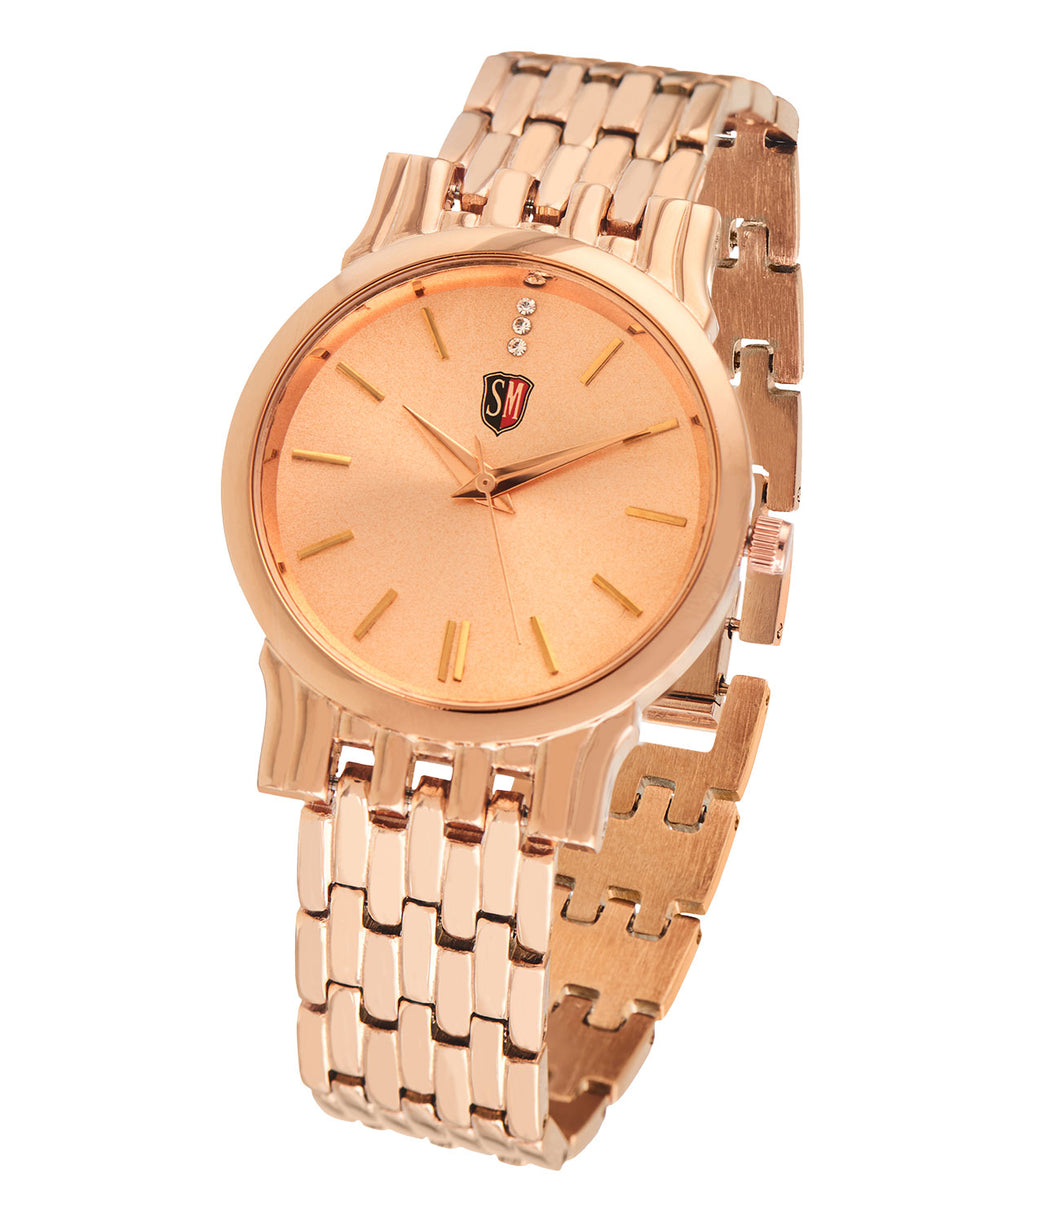 SM LADIES ROSE GOLD WATCH